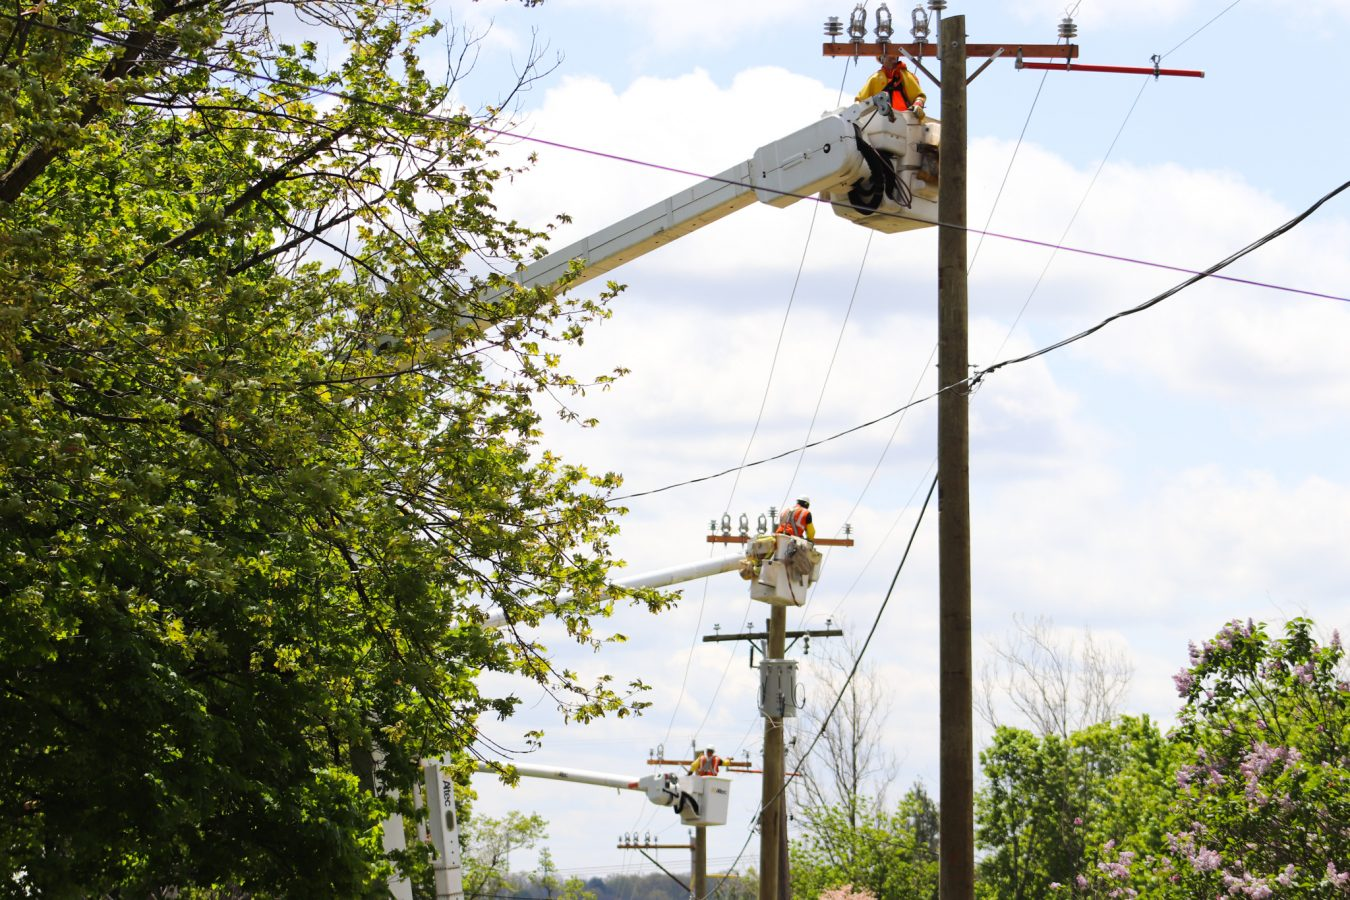 PECO is committed to continuing to provide the safe and reliable service that customers need